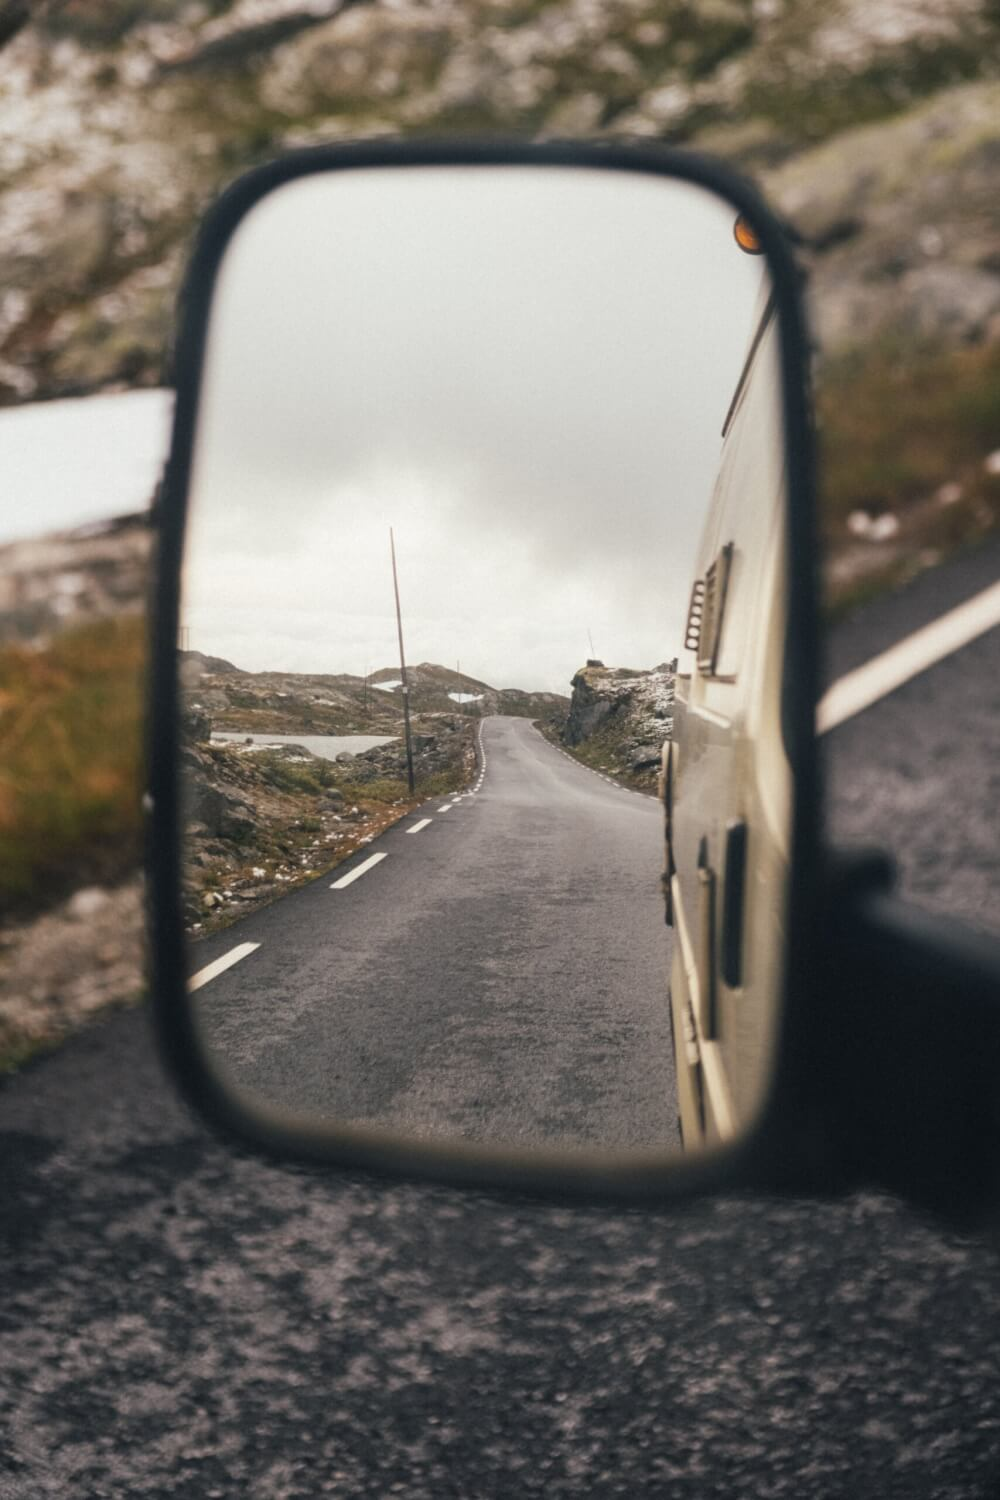 Car mirror on a Norweigan road